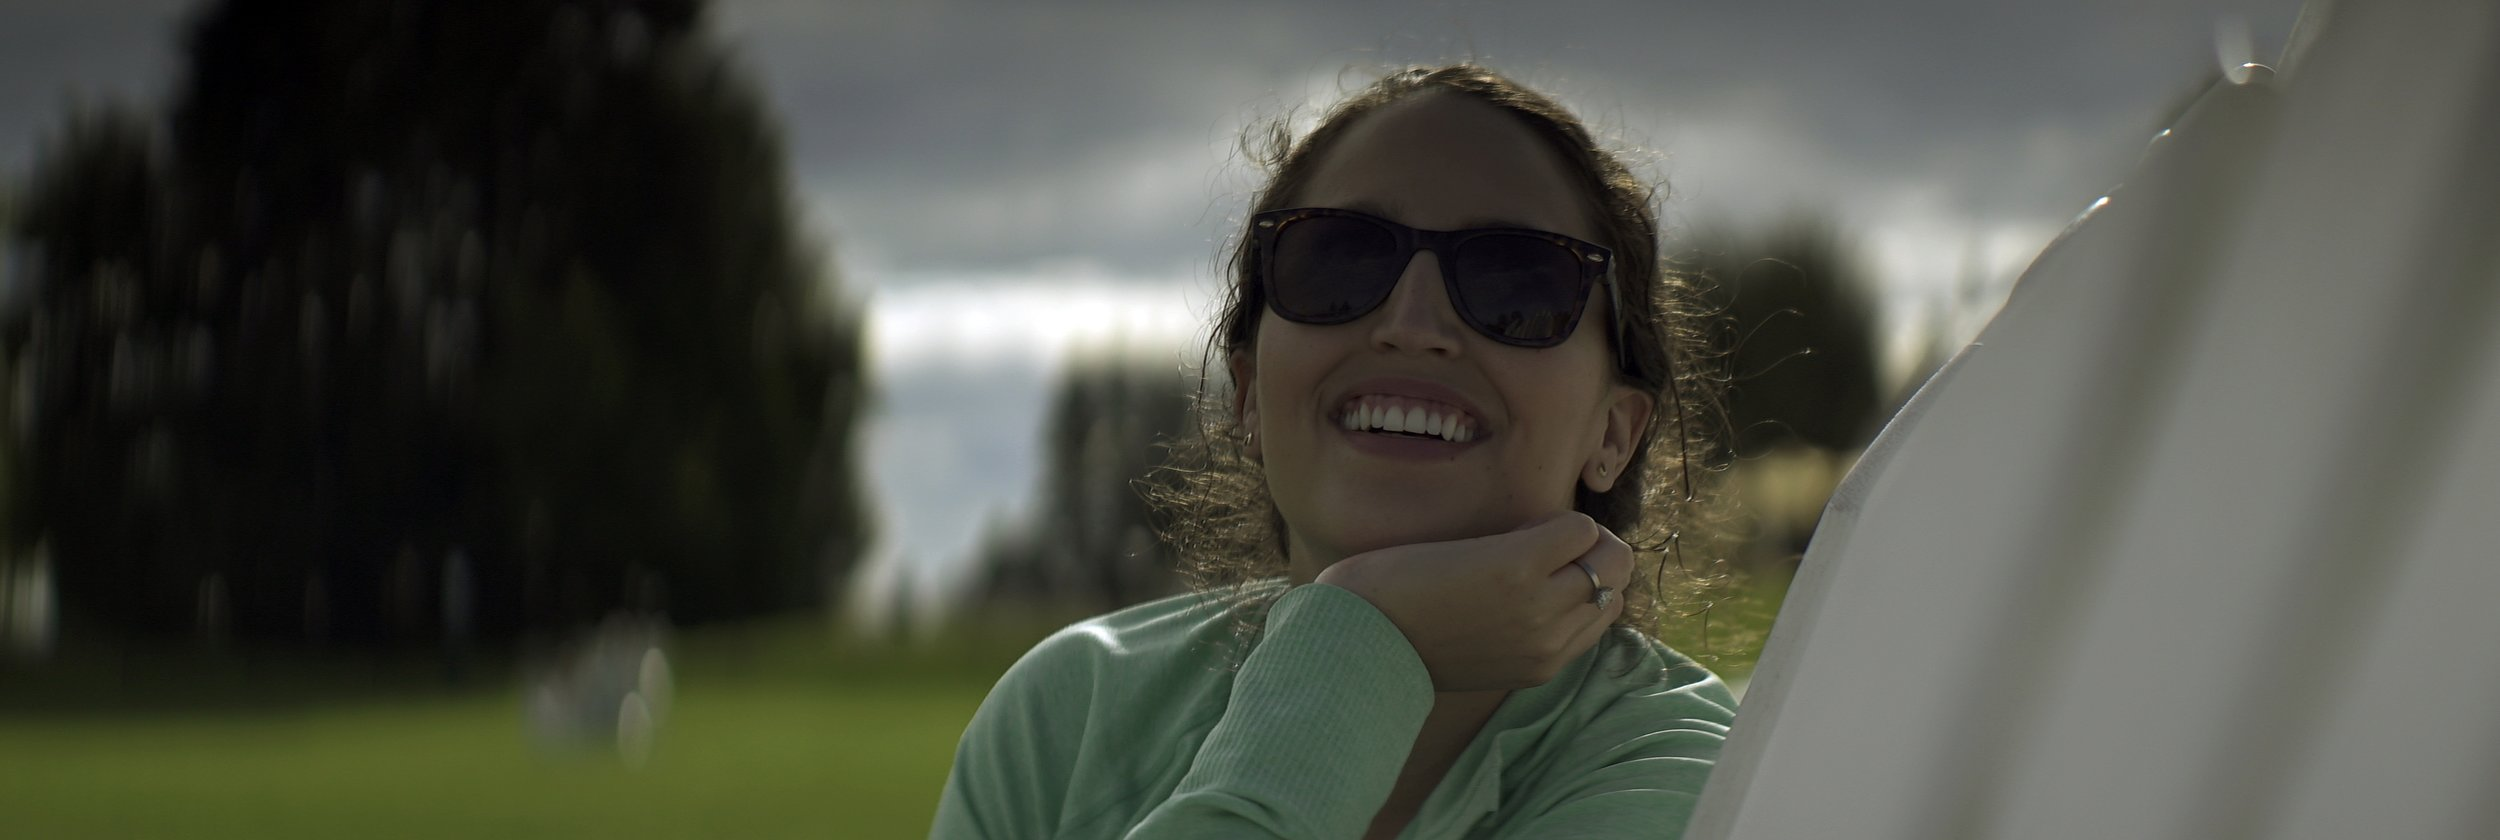 Lomo 100mm anamorphic lens | Olivia catching a nice backlight here at Mission Point Resort - Mackinac Island, MI - Photo by: Keith Nickoson